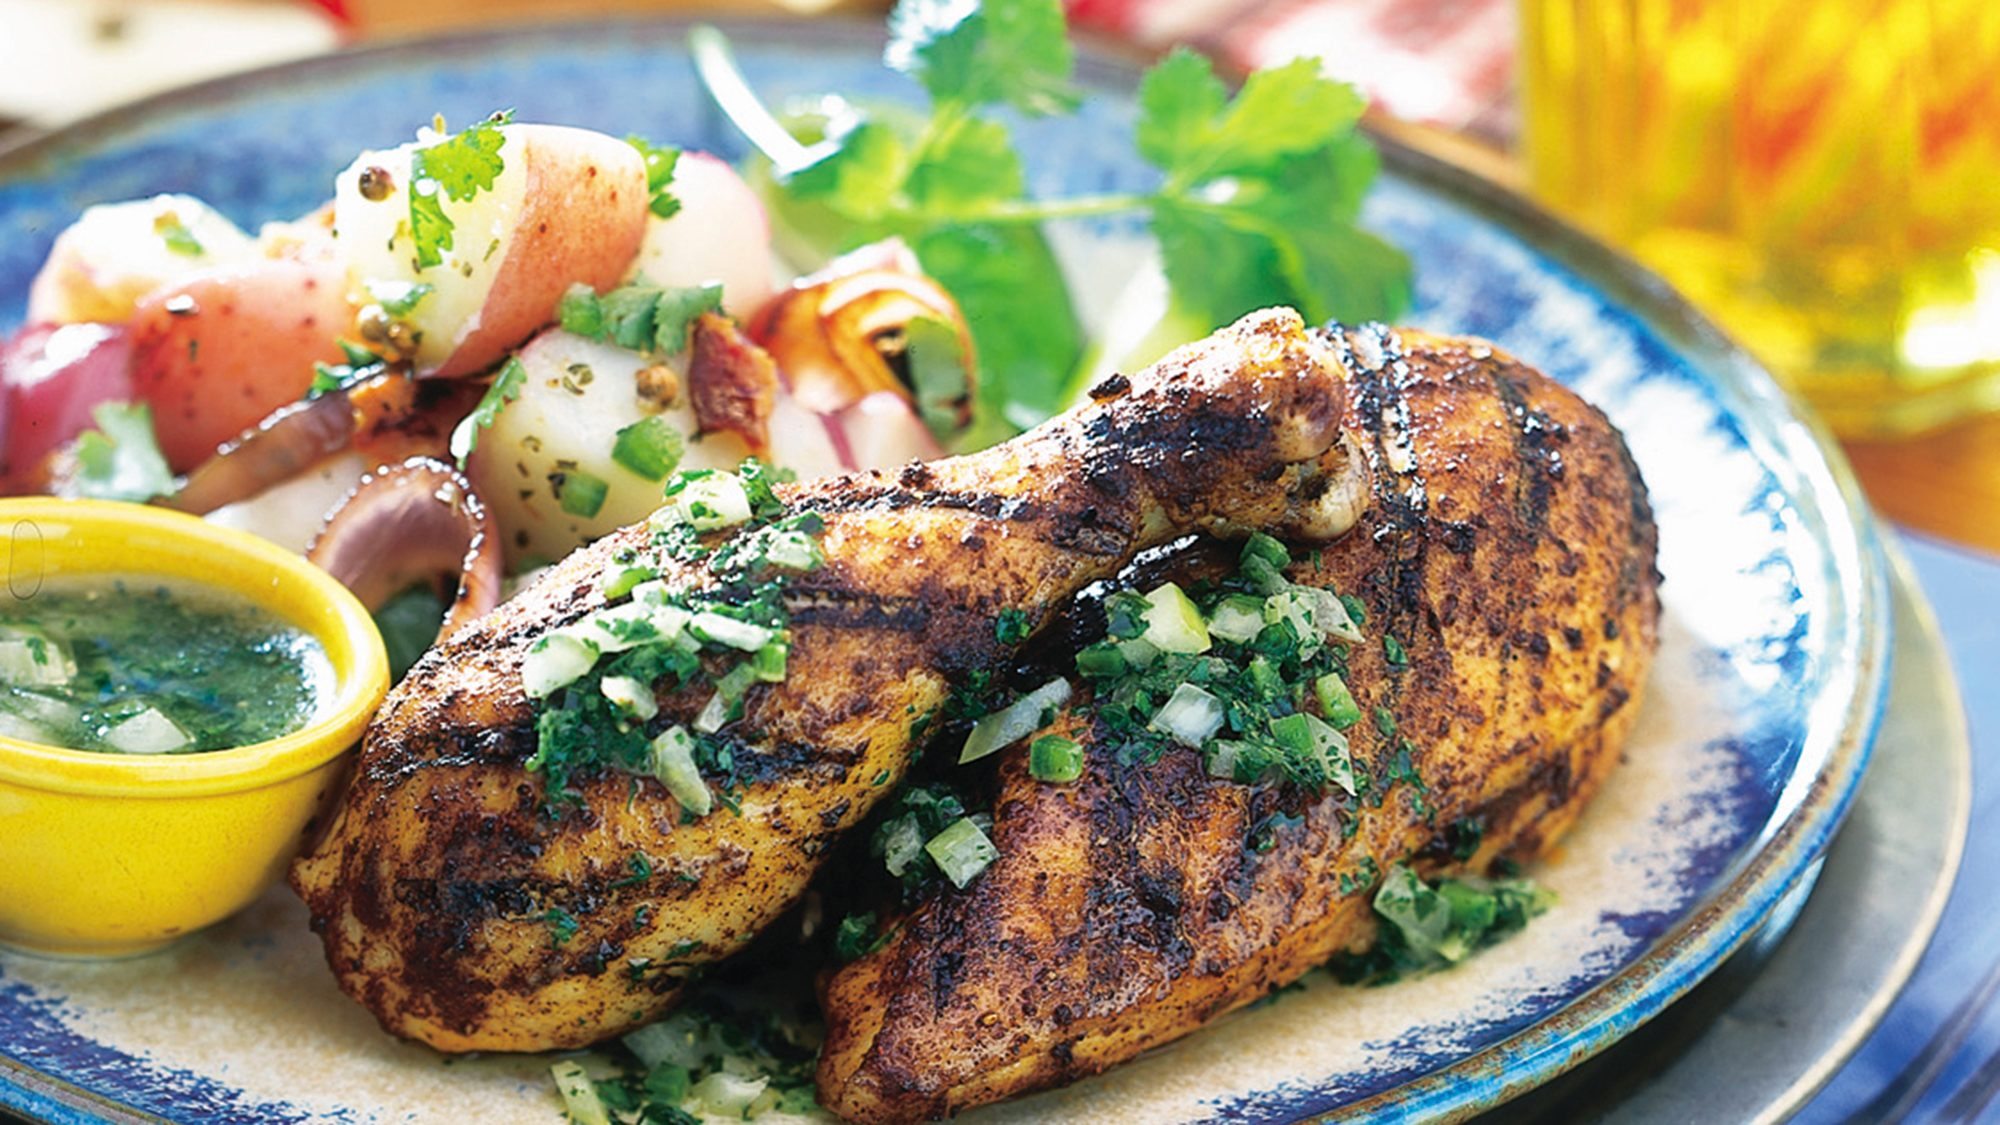 southwestern-grilled-chicken-with-lime-butter.jpg